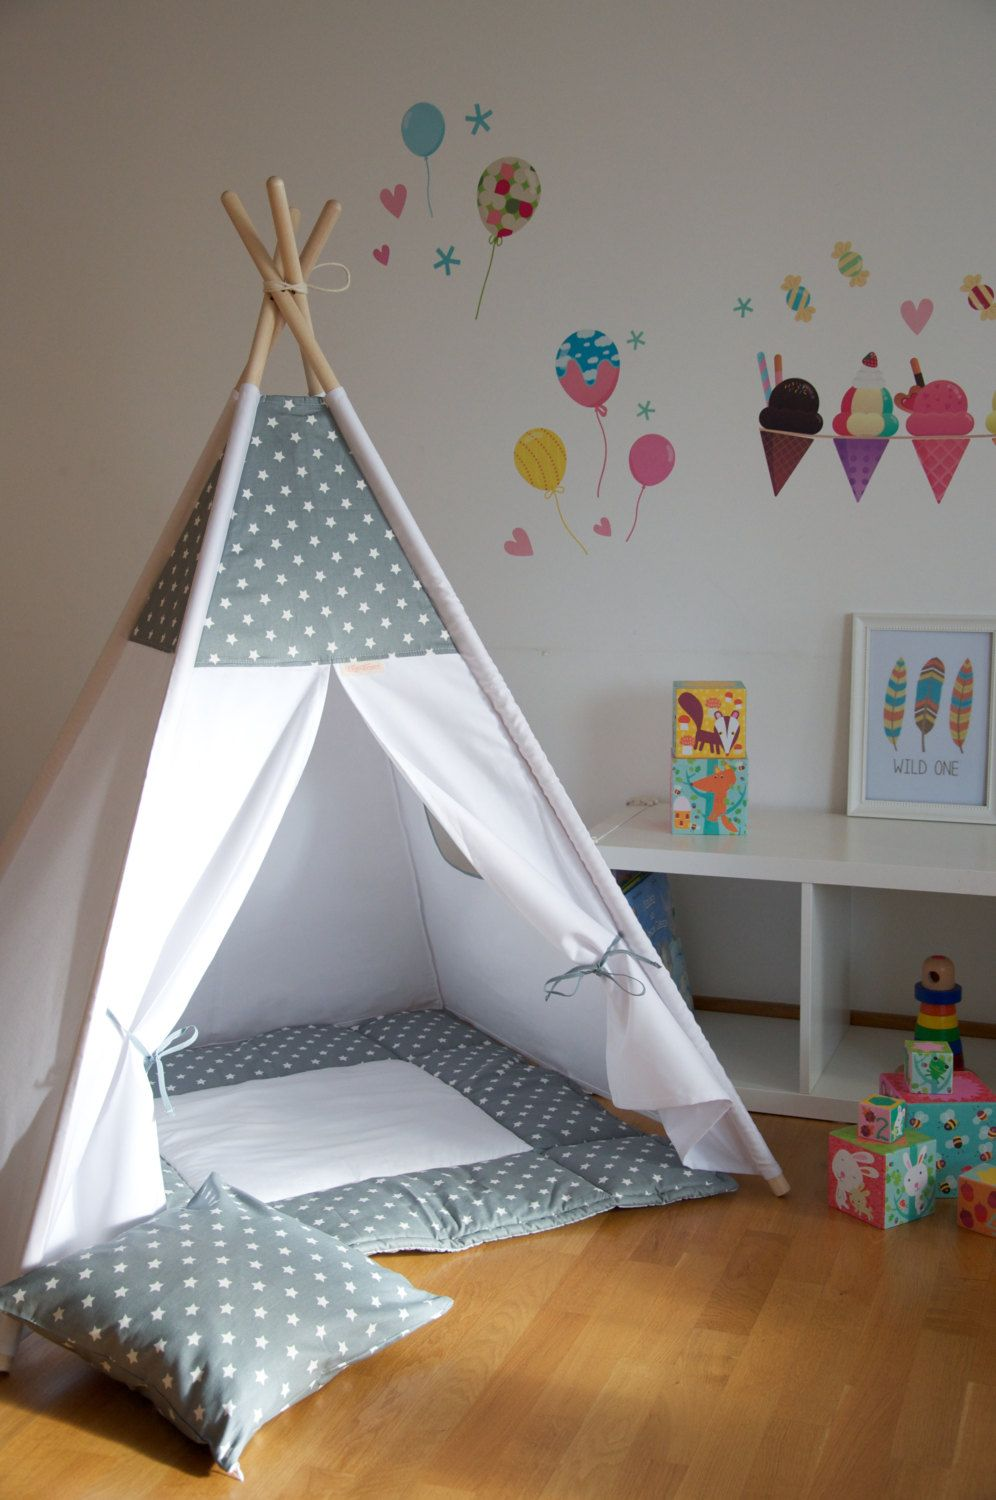 Gray stars kids teepee play tent with a padded floor mat by WigiWama on Etsy & Gray stars kids teepee play tent with a padded floor mat by ...